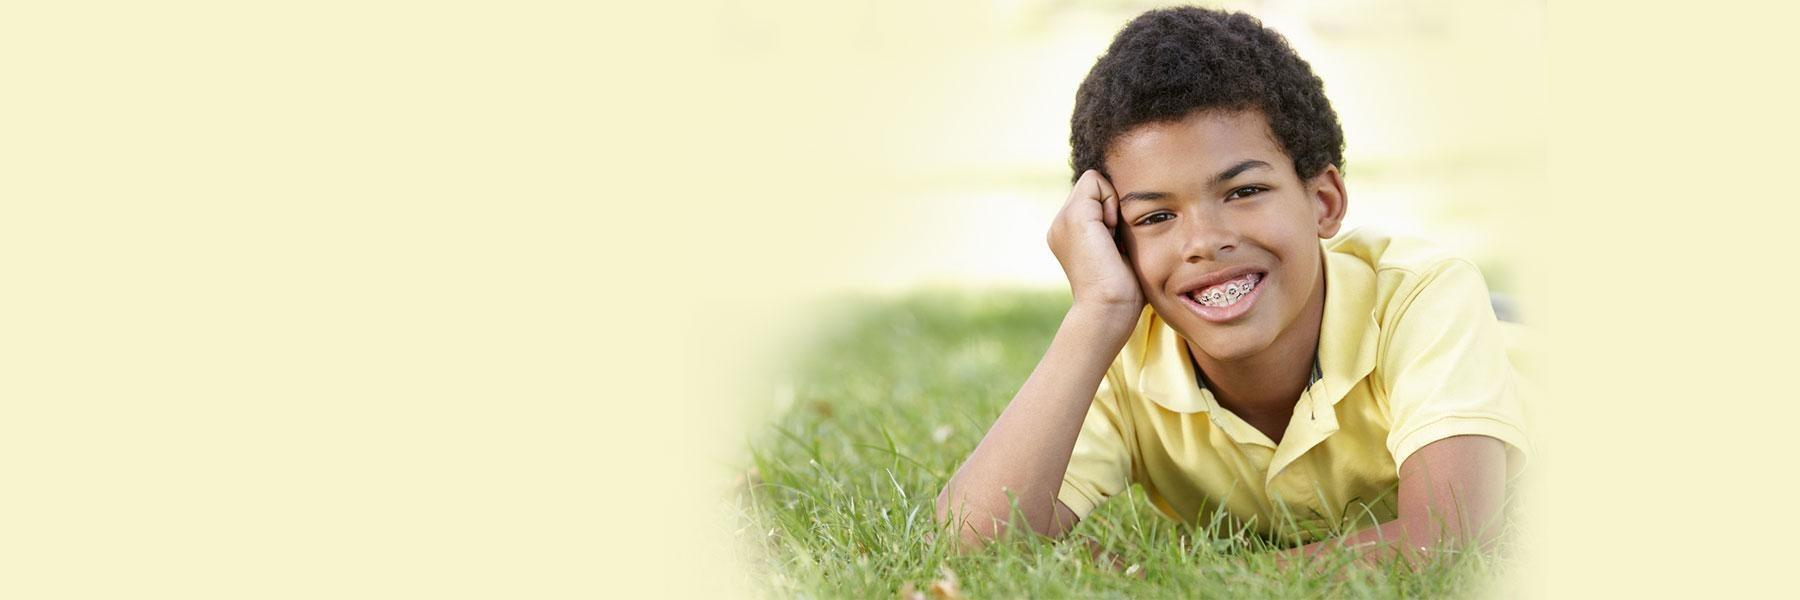 Kid with braces | Orthodontic treatment Palos Heights